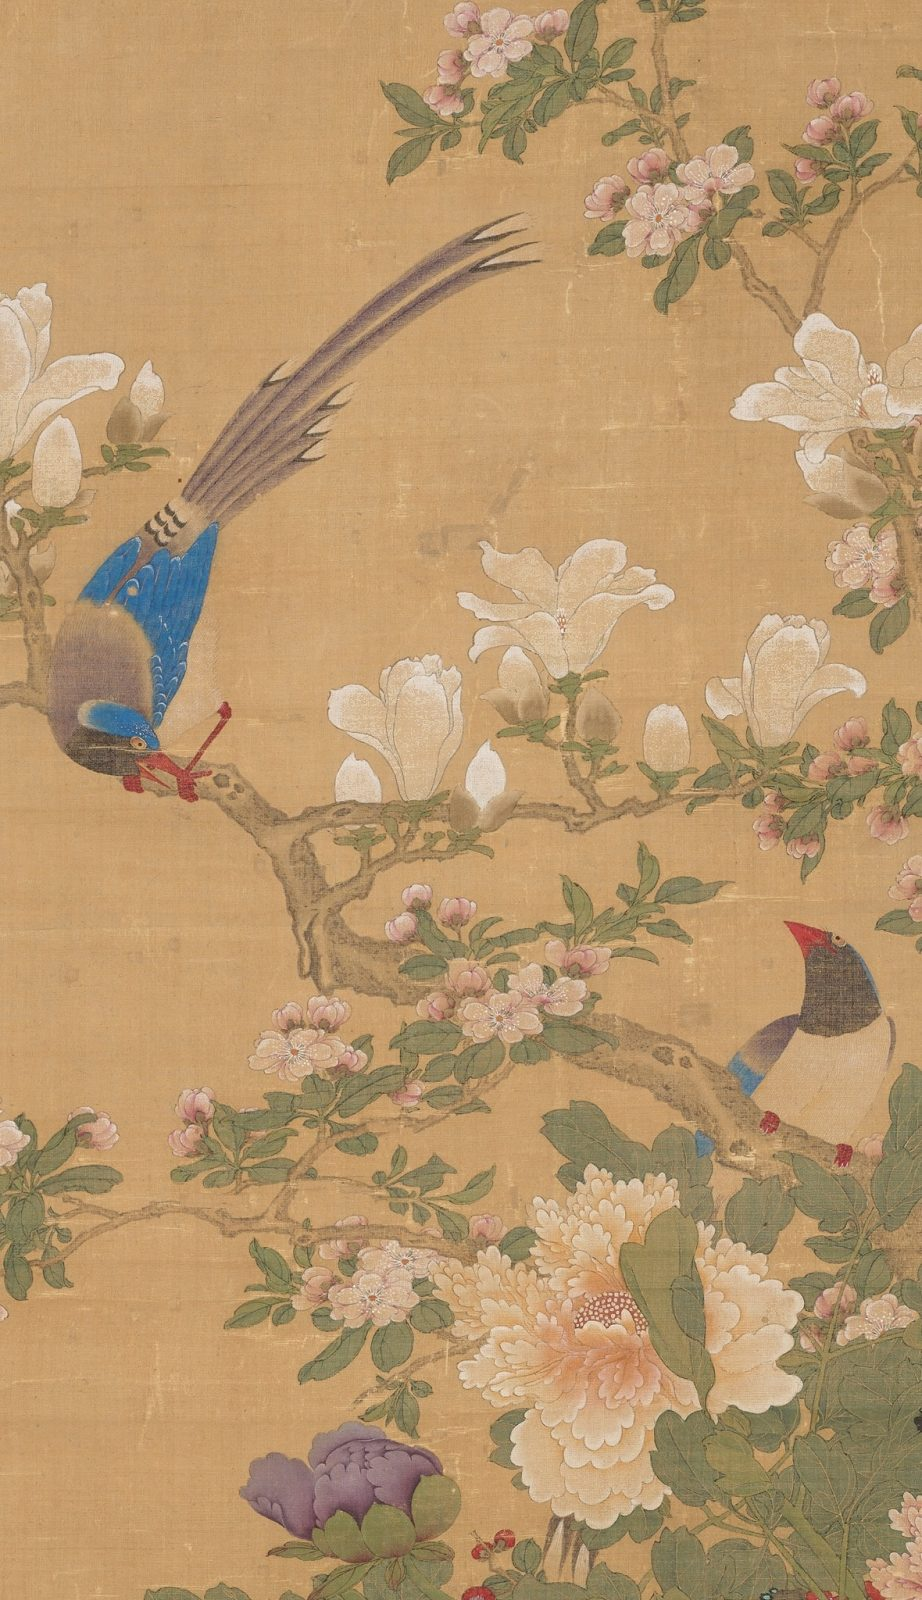 Image description: Birds and Flowers (detail), Sun Yi, hanging scroll; ink and color on silk, painting: 48 1/2 x 27 3/4 inches; mounting; 92 1/2 x 34 inches. Detail of scroll depicting two birds perched on flowering branches. A brown bark covered branch bisects the work from upper left slanting down the lower right. A male bird grips the branch at left, grey plumed tail held high while it bows its blue capped head at its mate at lower right. Its wings are bright blue, body gray and beak, legs and feet a brilliant red. They perch among creamy white magnolia blossoms and buds, tiny pale pink crabapple blossoms and leafy greenery. A large peach magnolia blossom with its many layered, ruffled petals is at lower bottom next to a violet peony bud. The scene is set against a khaki background.